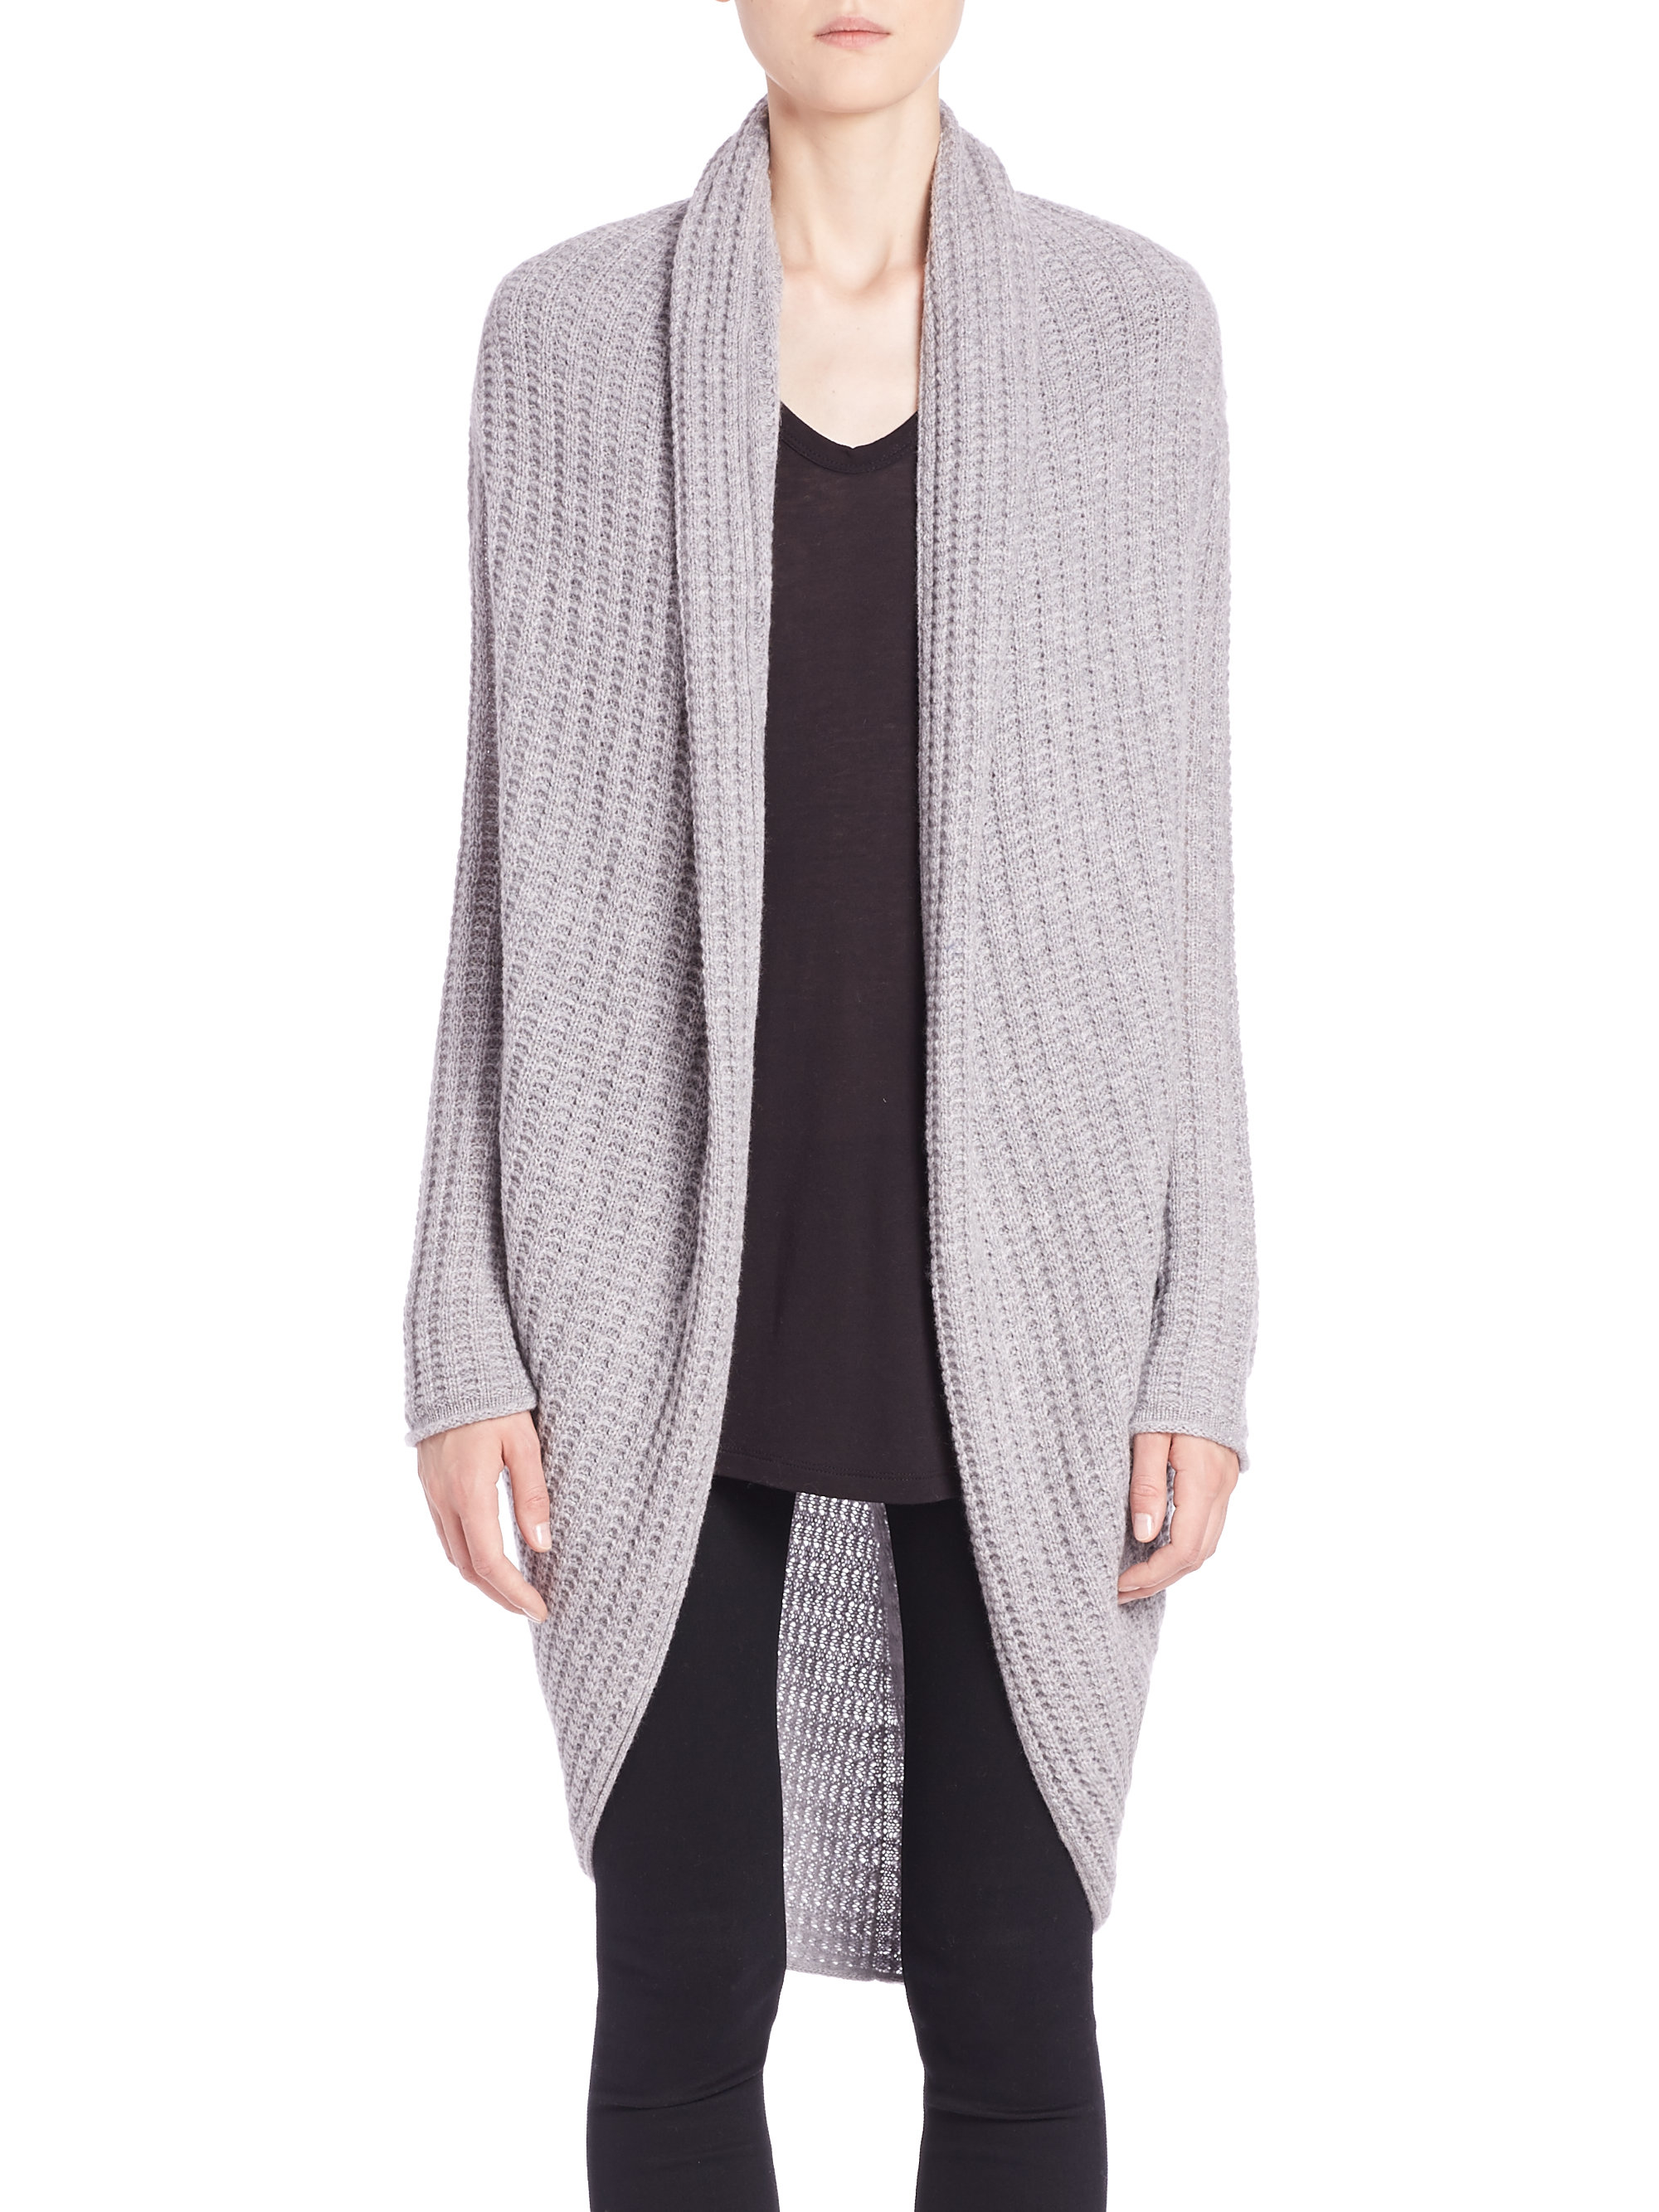 United Luggage Size Lyst 360cashmere Josephine Cashmere Cocoon Sweater In Gray